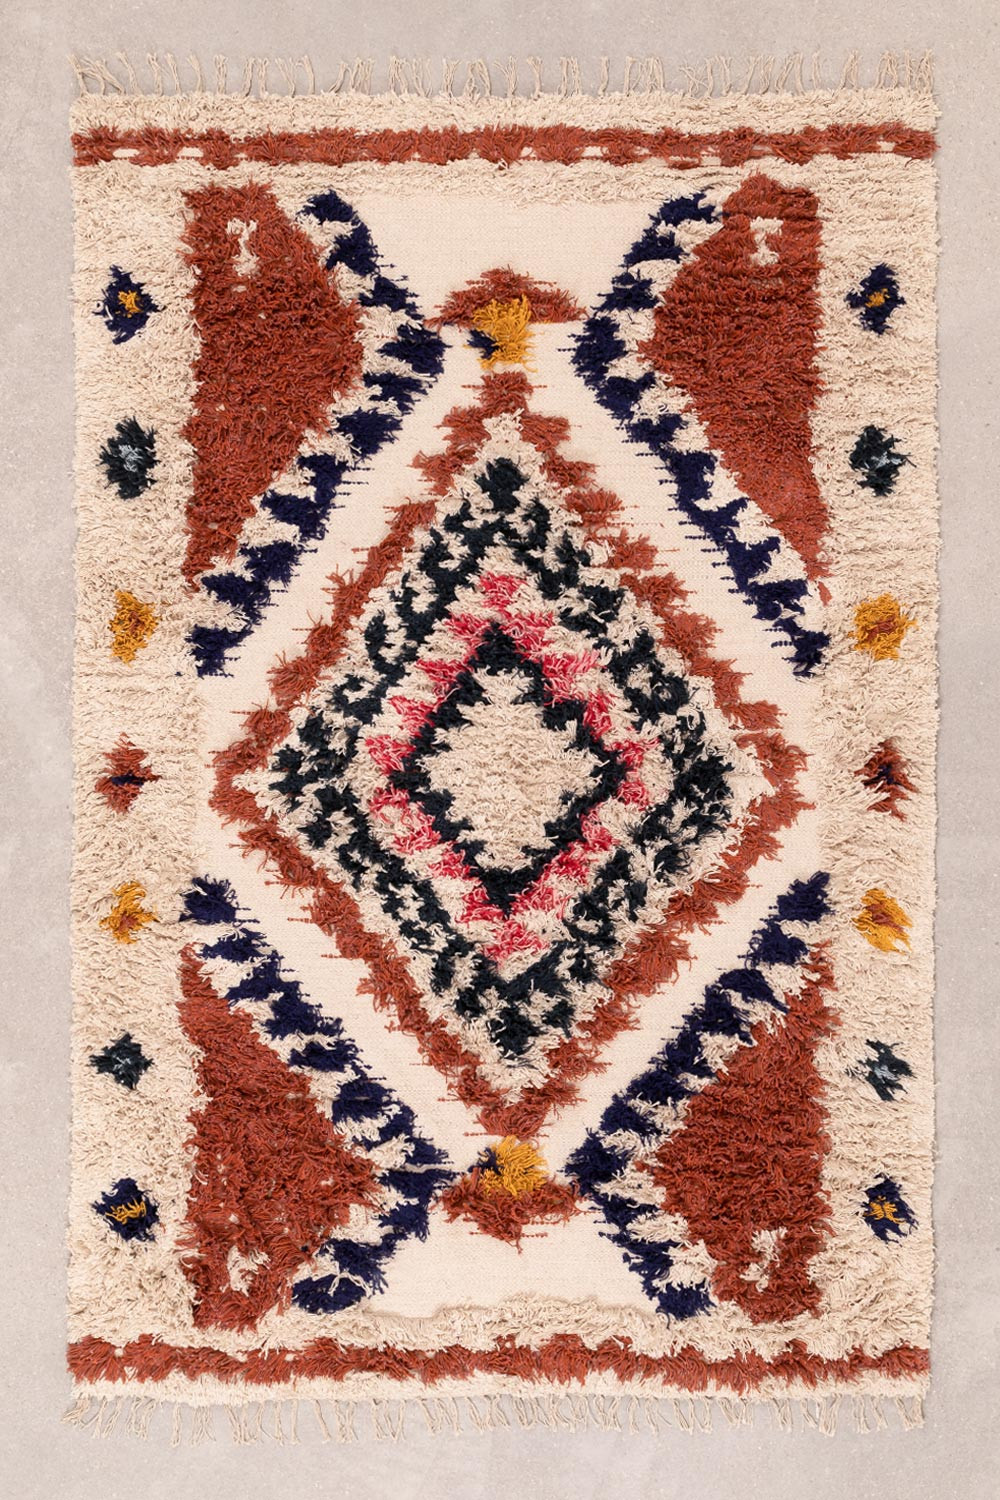 Cotton and Wool Rug (185x120 cm) Manit, gallery image 1